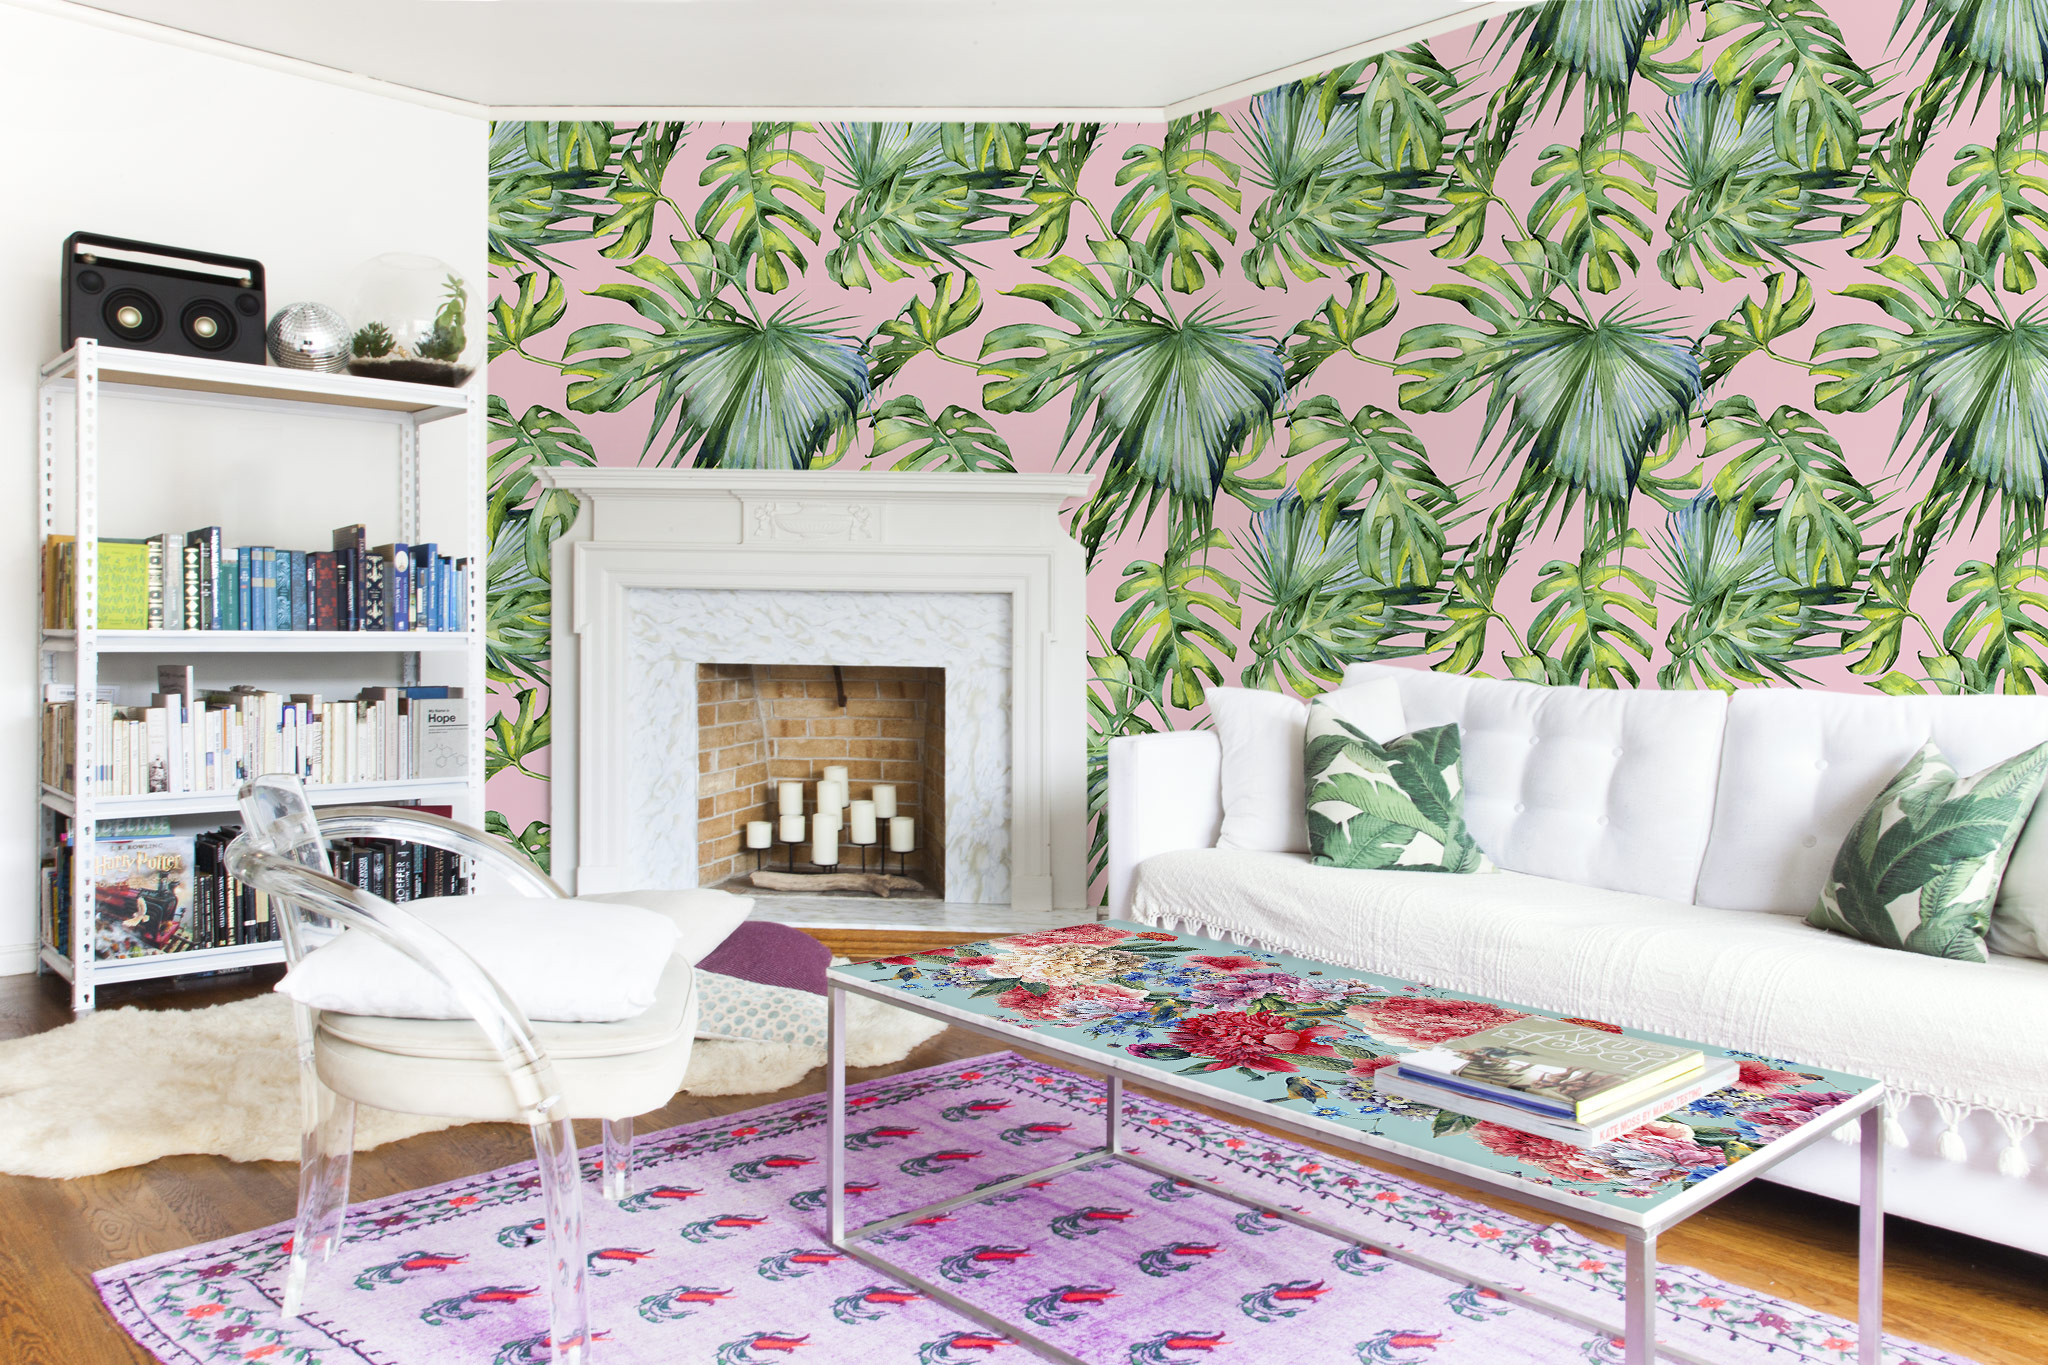 Pink Jungle Living Room Shabby Chic Wall Murals Stickers Flowers And Plants Pixers We Live To Change